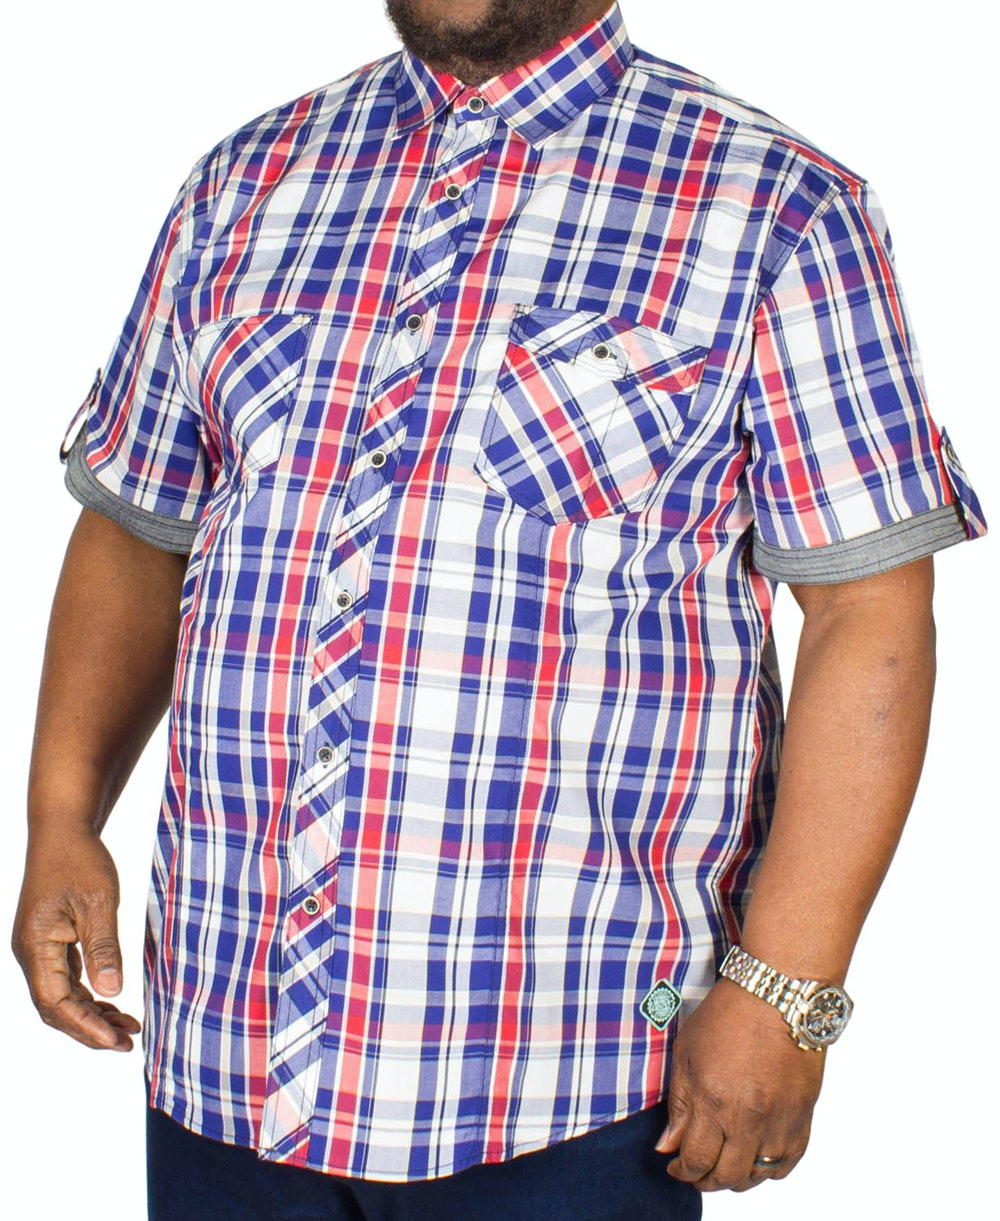 KAM Retro Check Shirt Stone